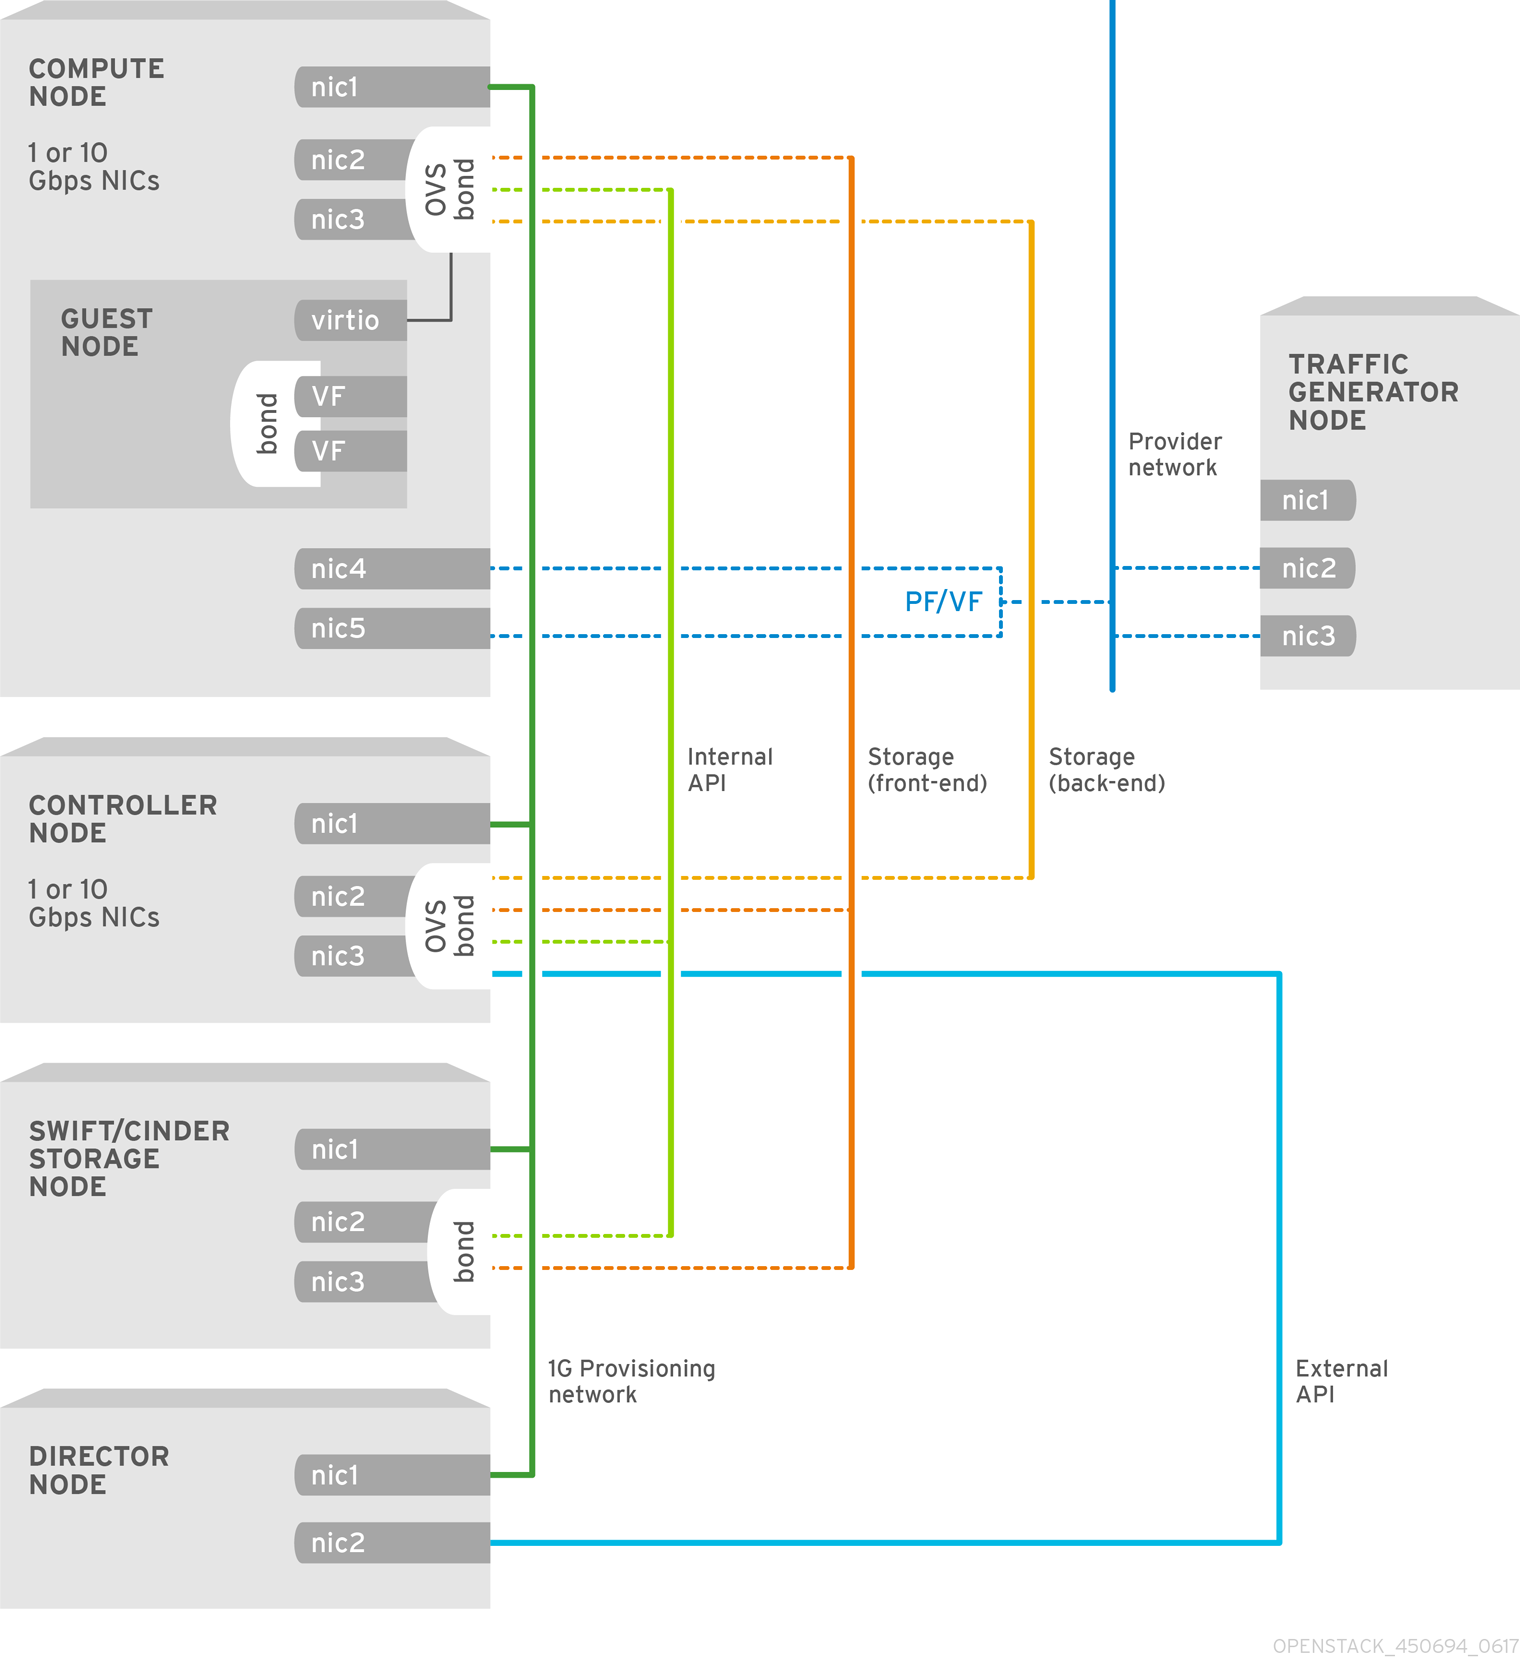 Chapter 6 Configuring An Sr Iov Deployment Red Hat Customer Portal V F Control Block Diagram Openstack Nfv Config Guide Topology 450694 0617 Ece